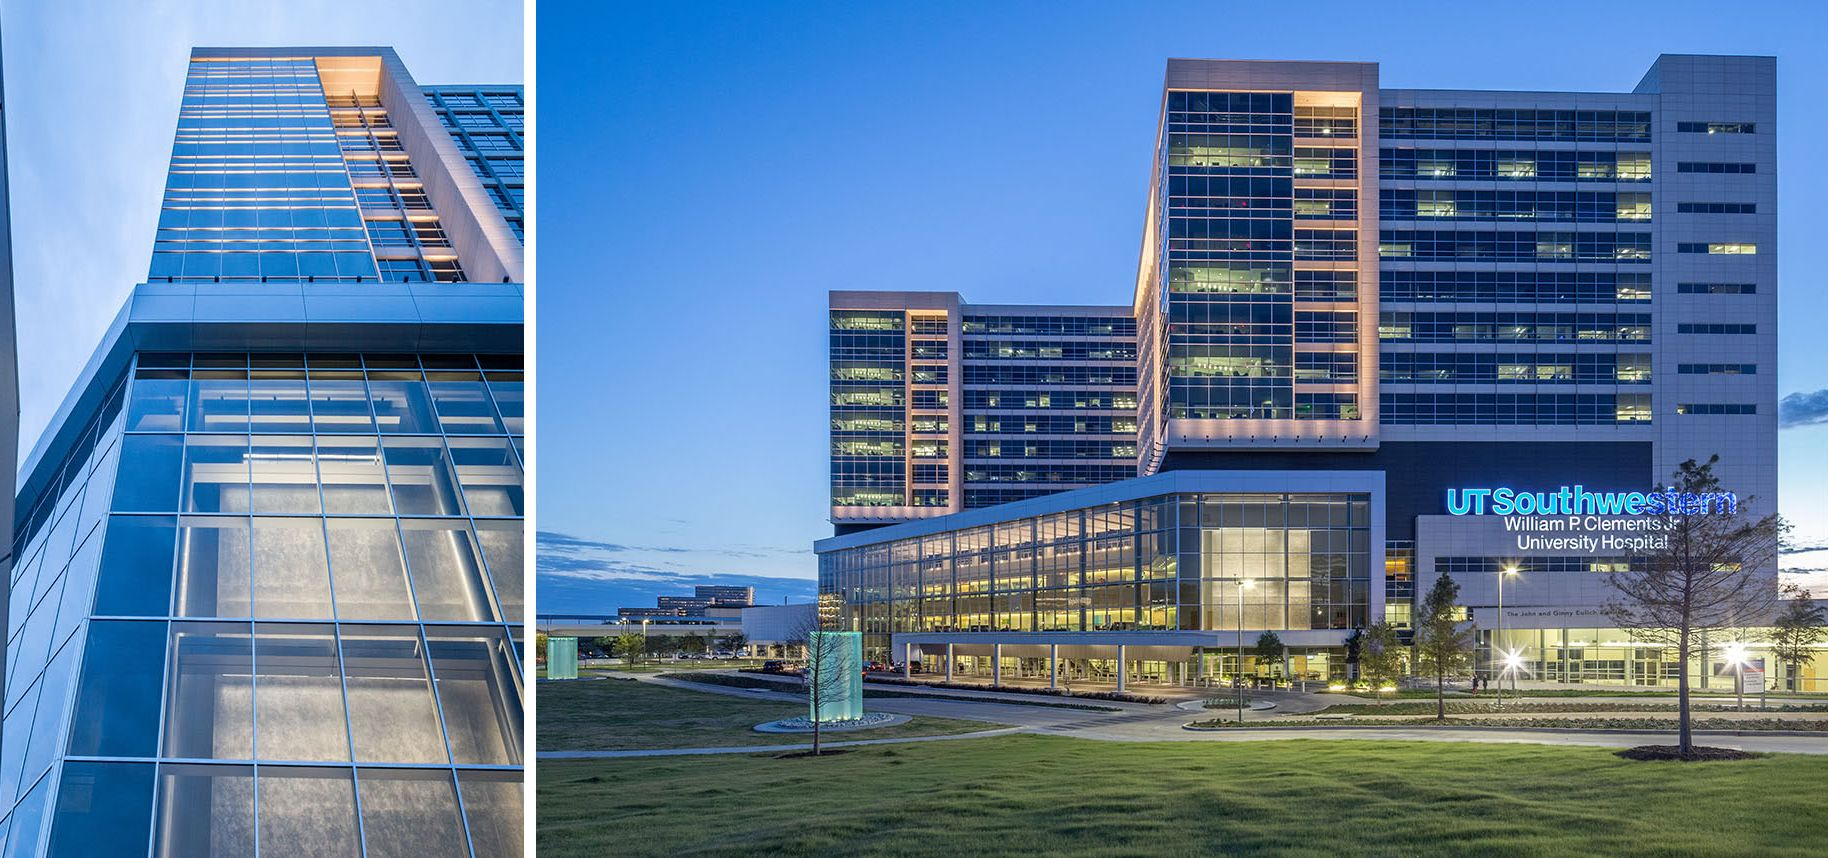 William P. Clements Jr. University Hospital at UT Southwestern Medical Center at Dallas